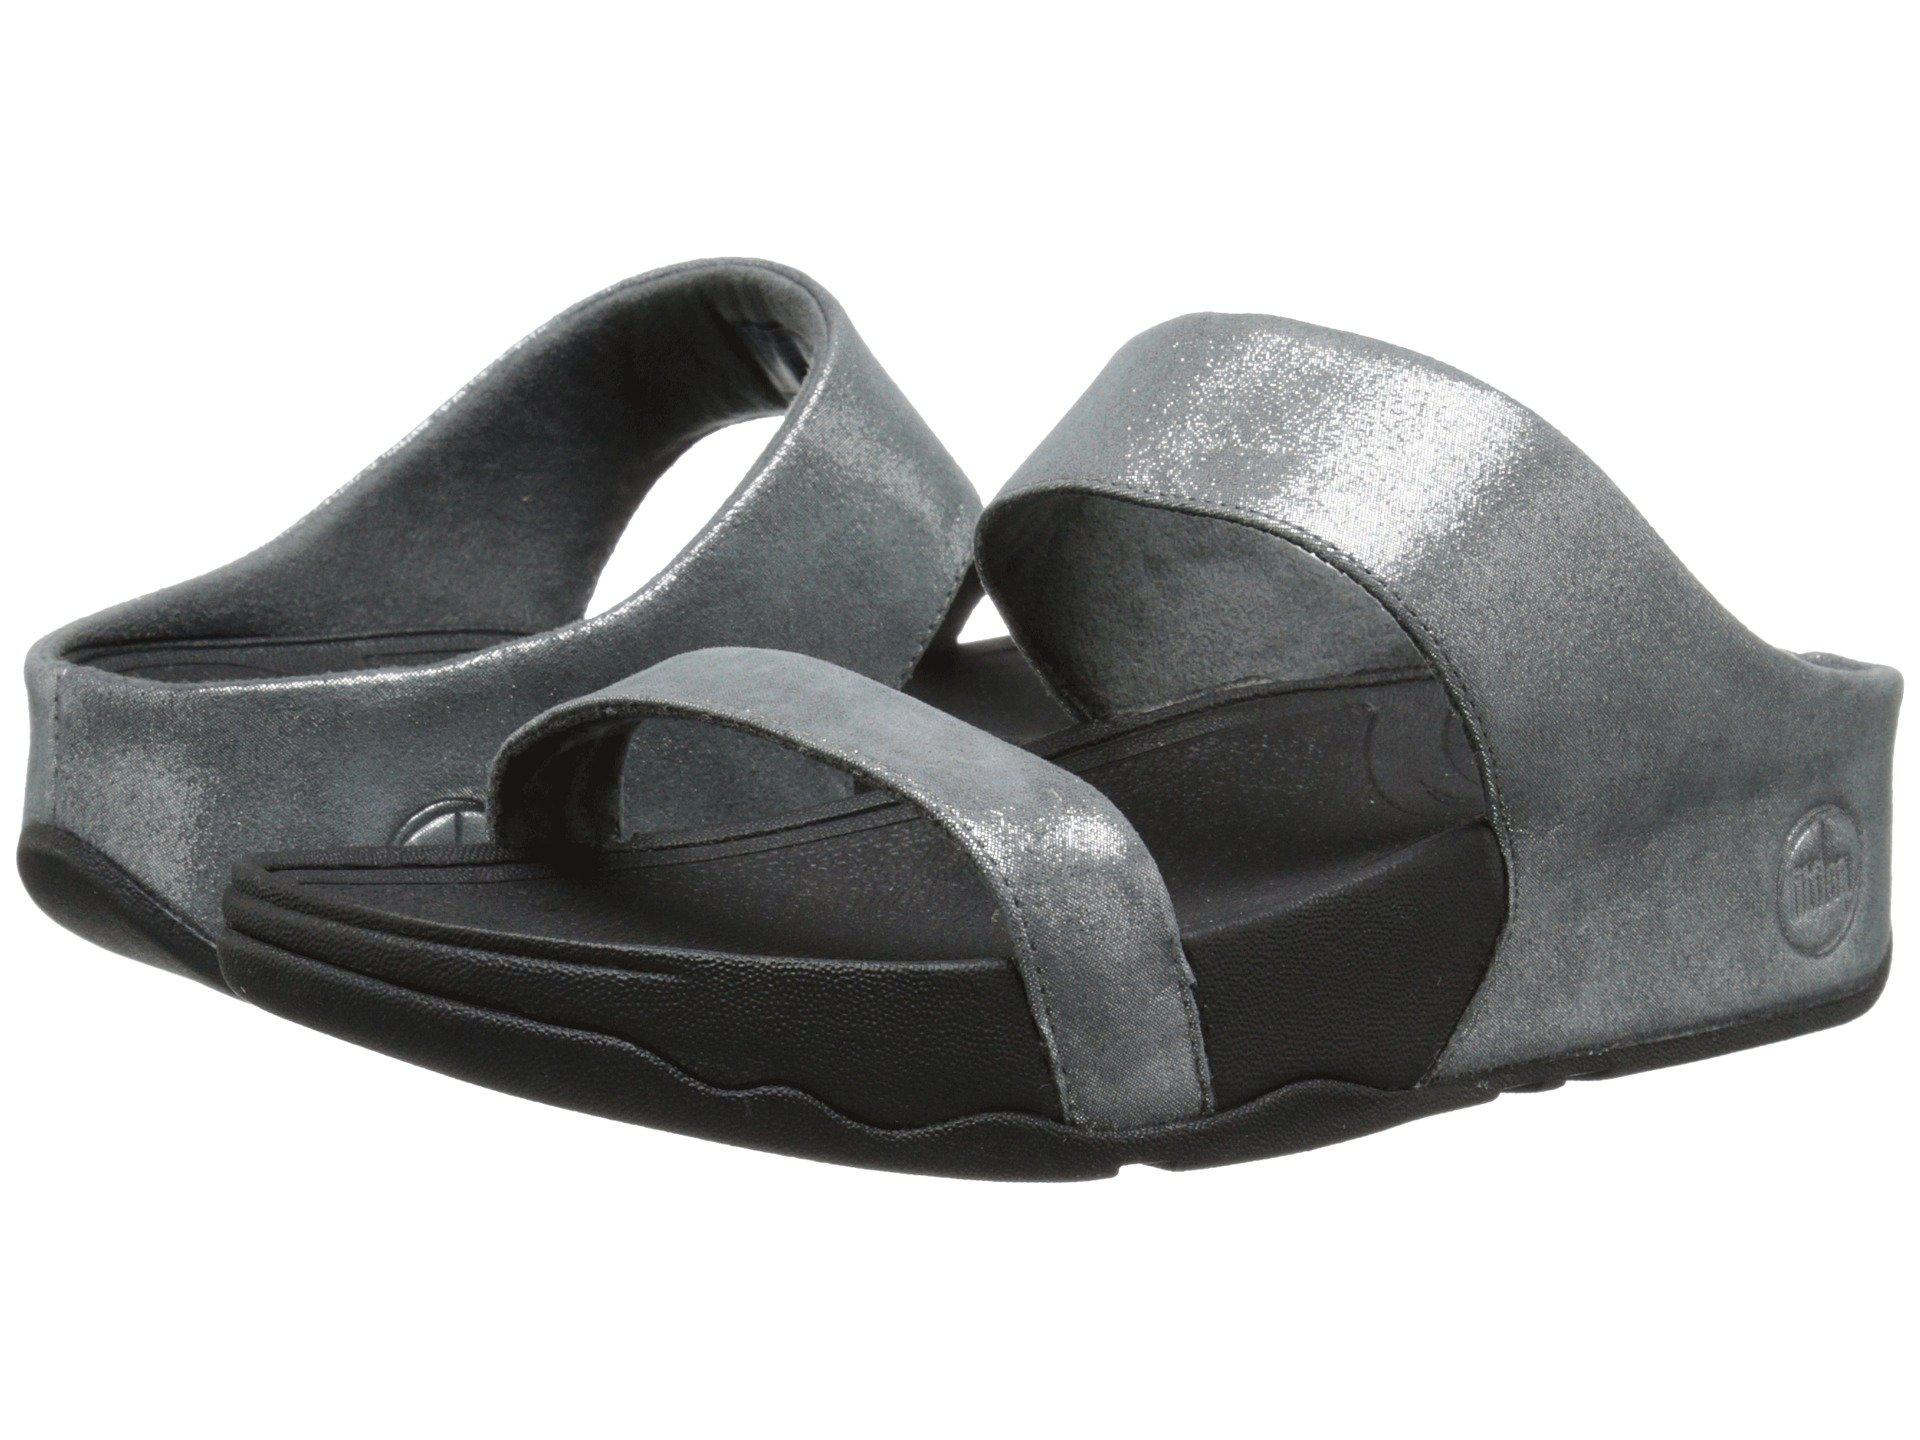 FitFlop Lulu Shimmersuede cYx55CZcO4